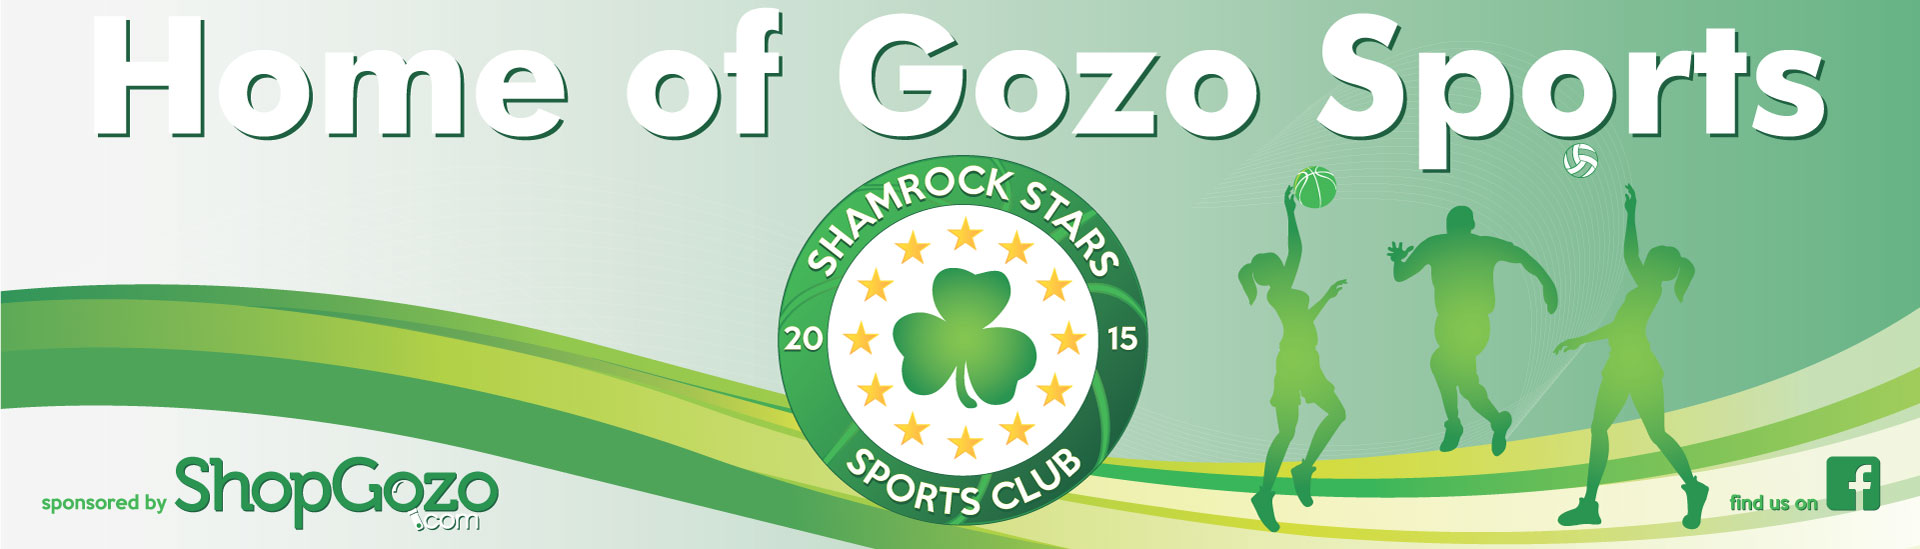 Home of Gozo Sports